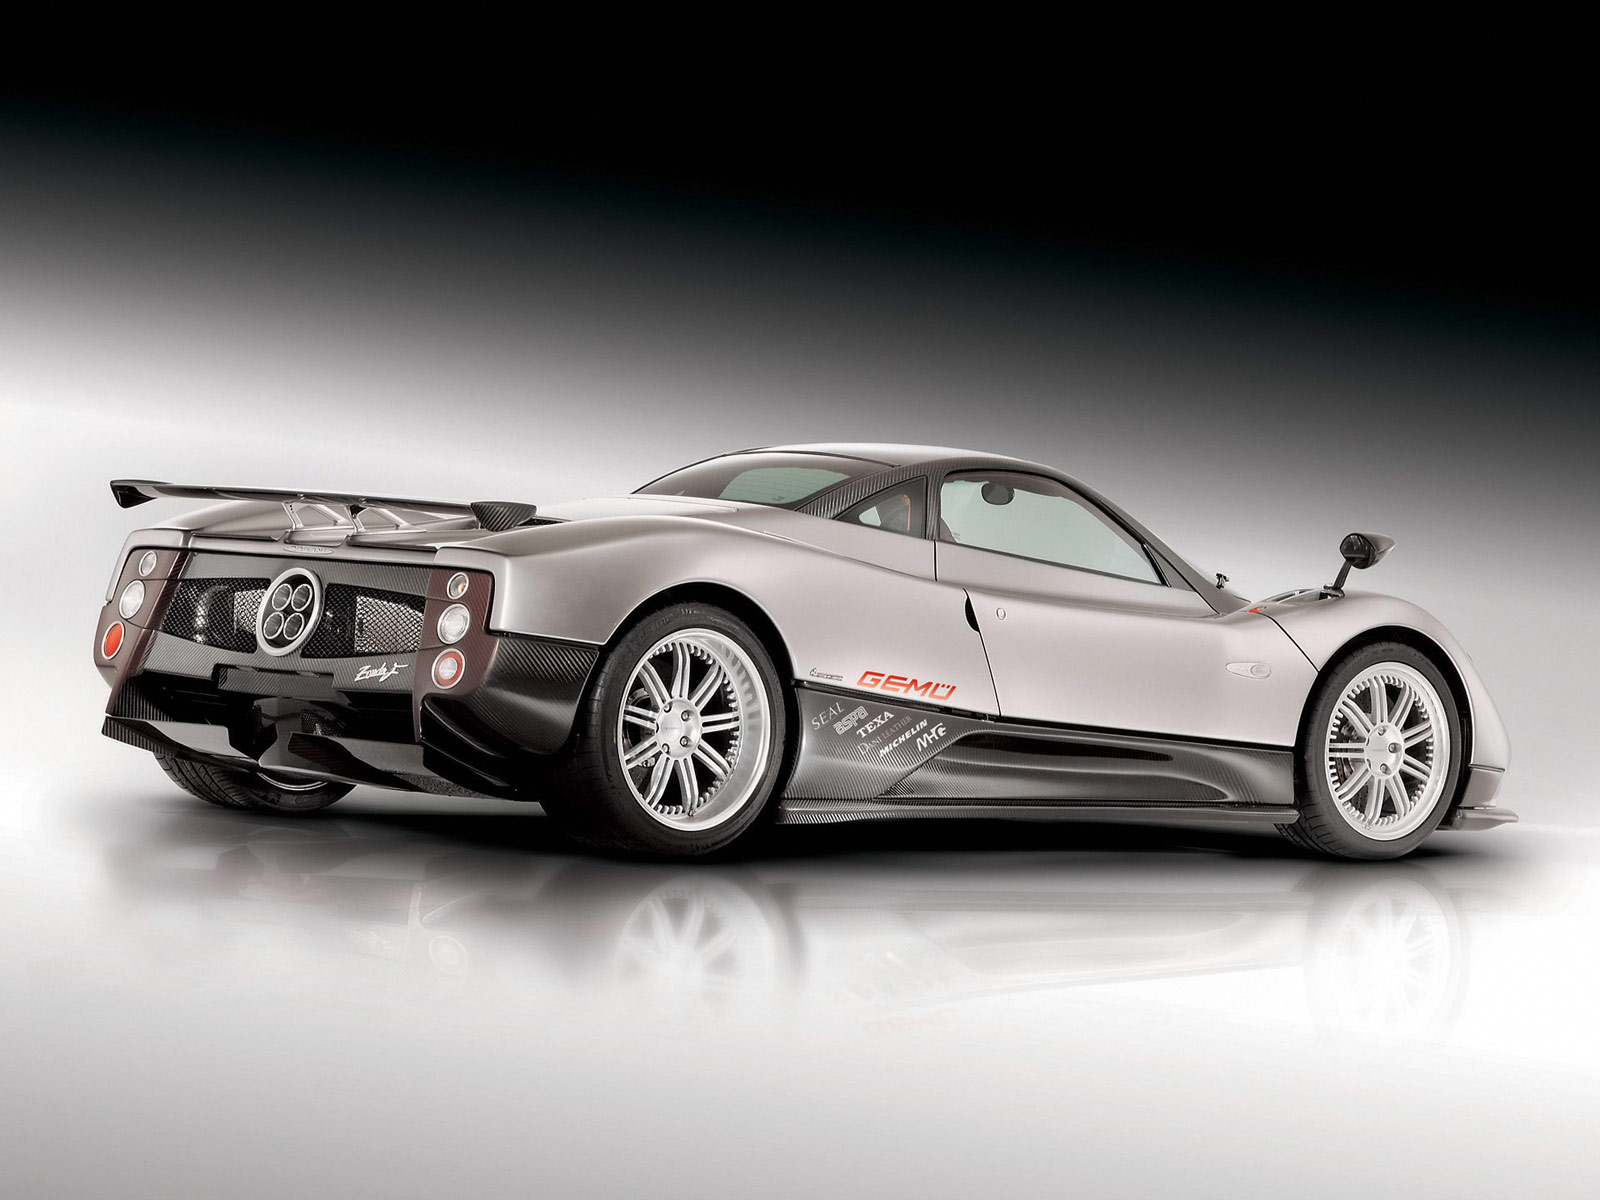 sports car world meet your desires pagani zonda f. Black Bedroom Furniture Sets. Home Design Ideas